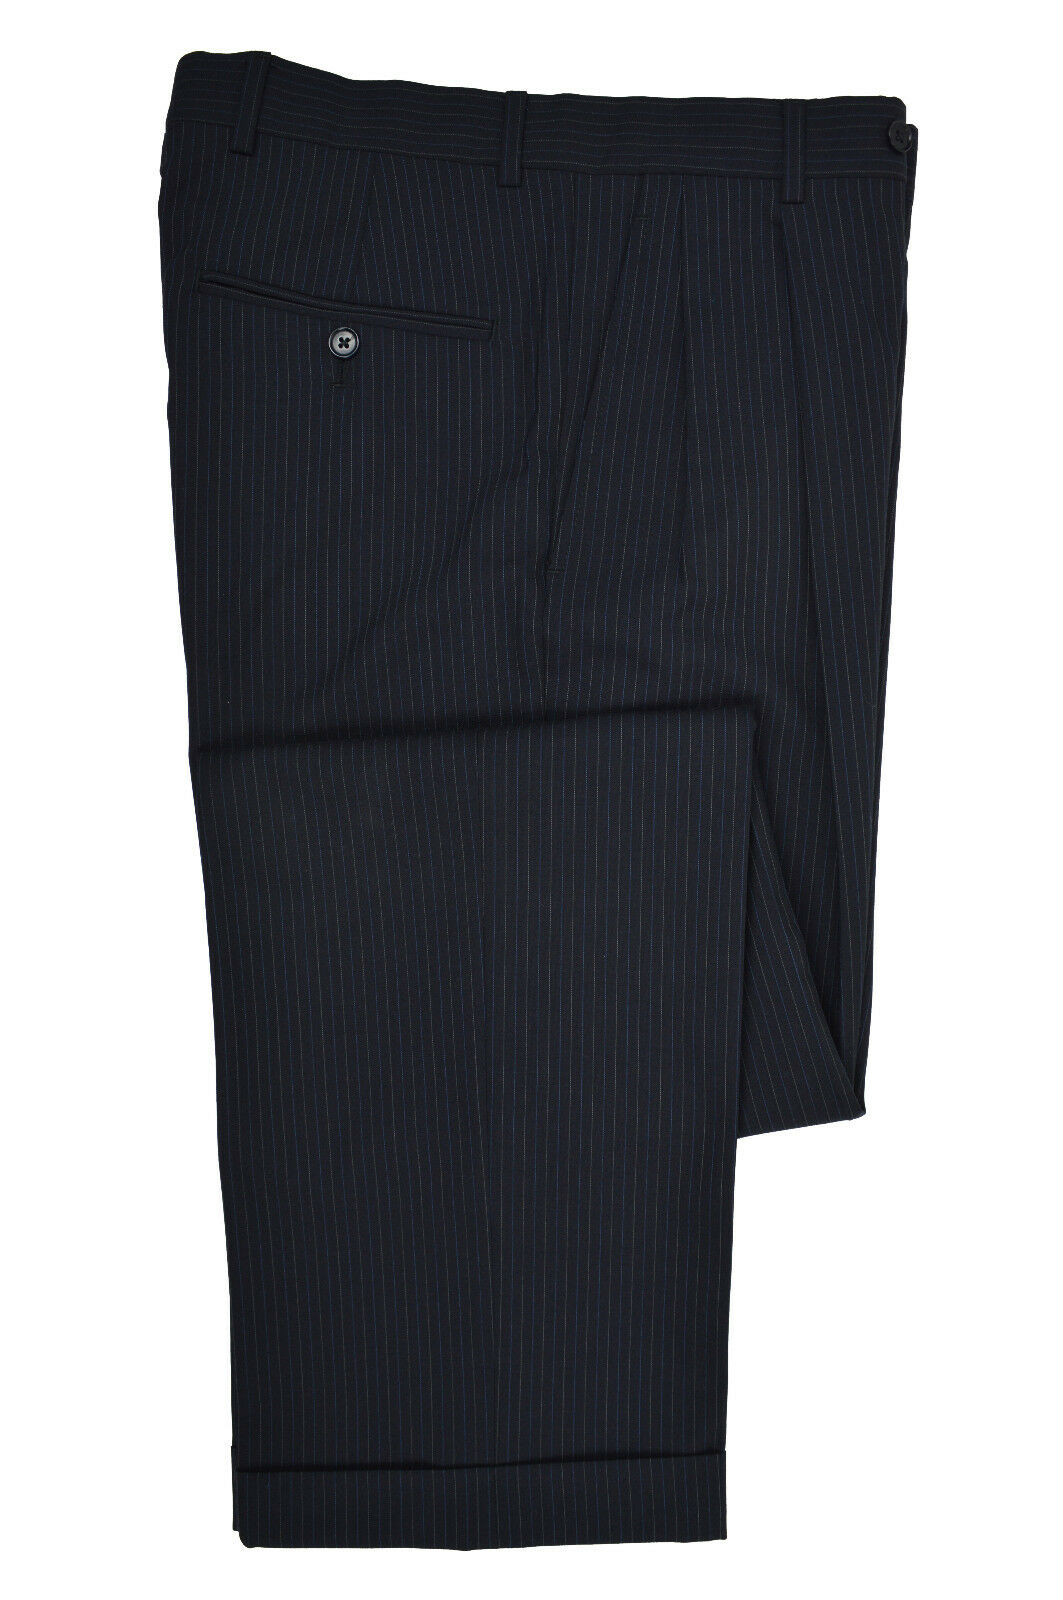 Brooks Bredhers Mens Navy bluee Striped Pleated Cuffed Dress Pants 31W 31L 5911-3